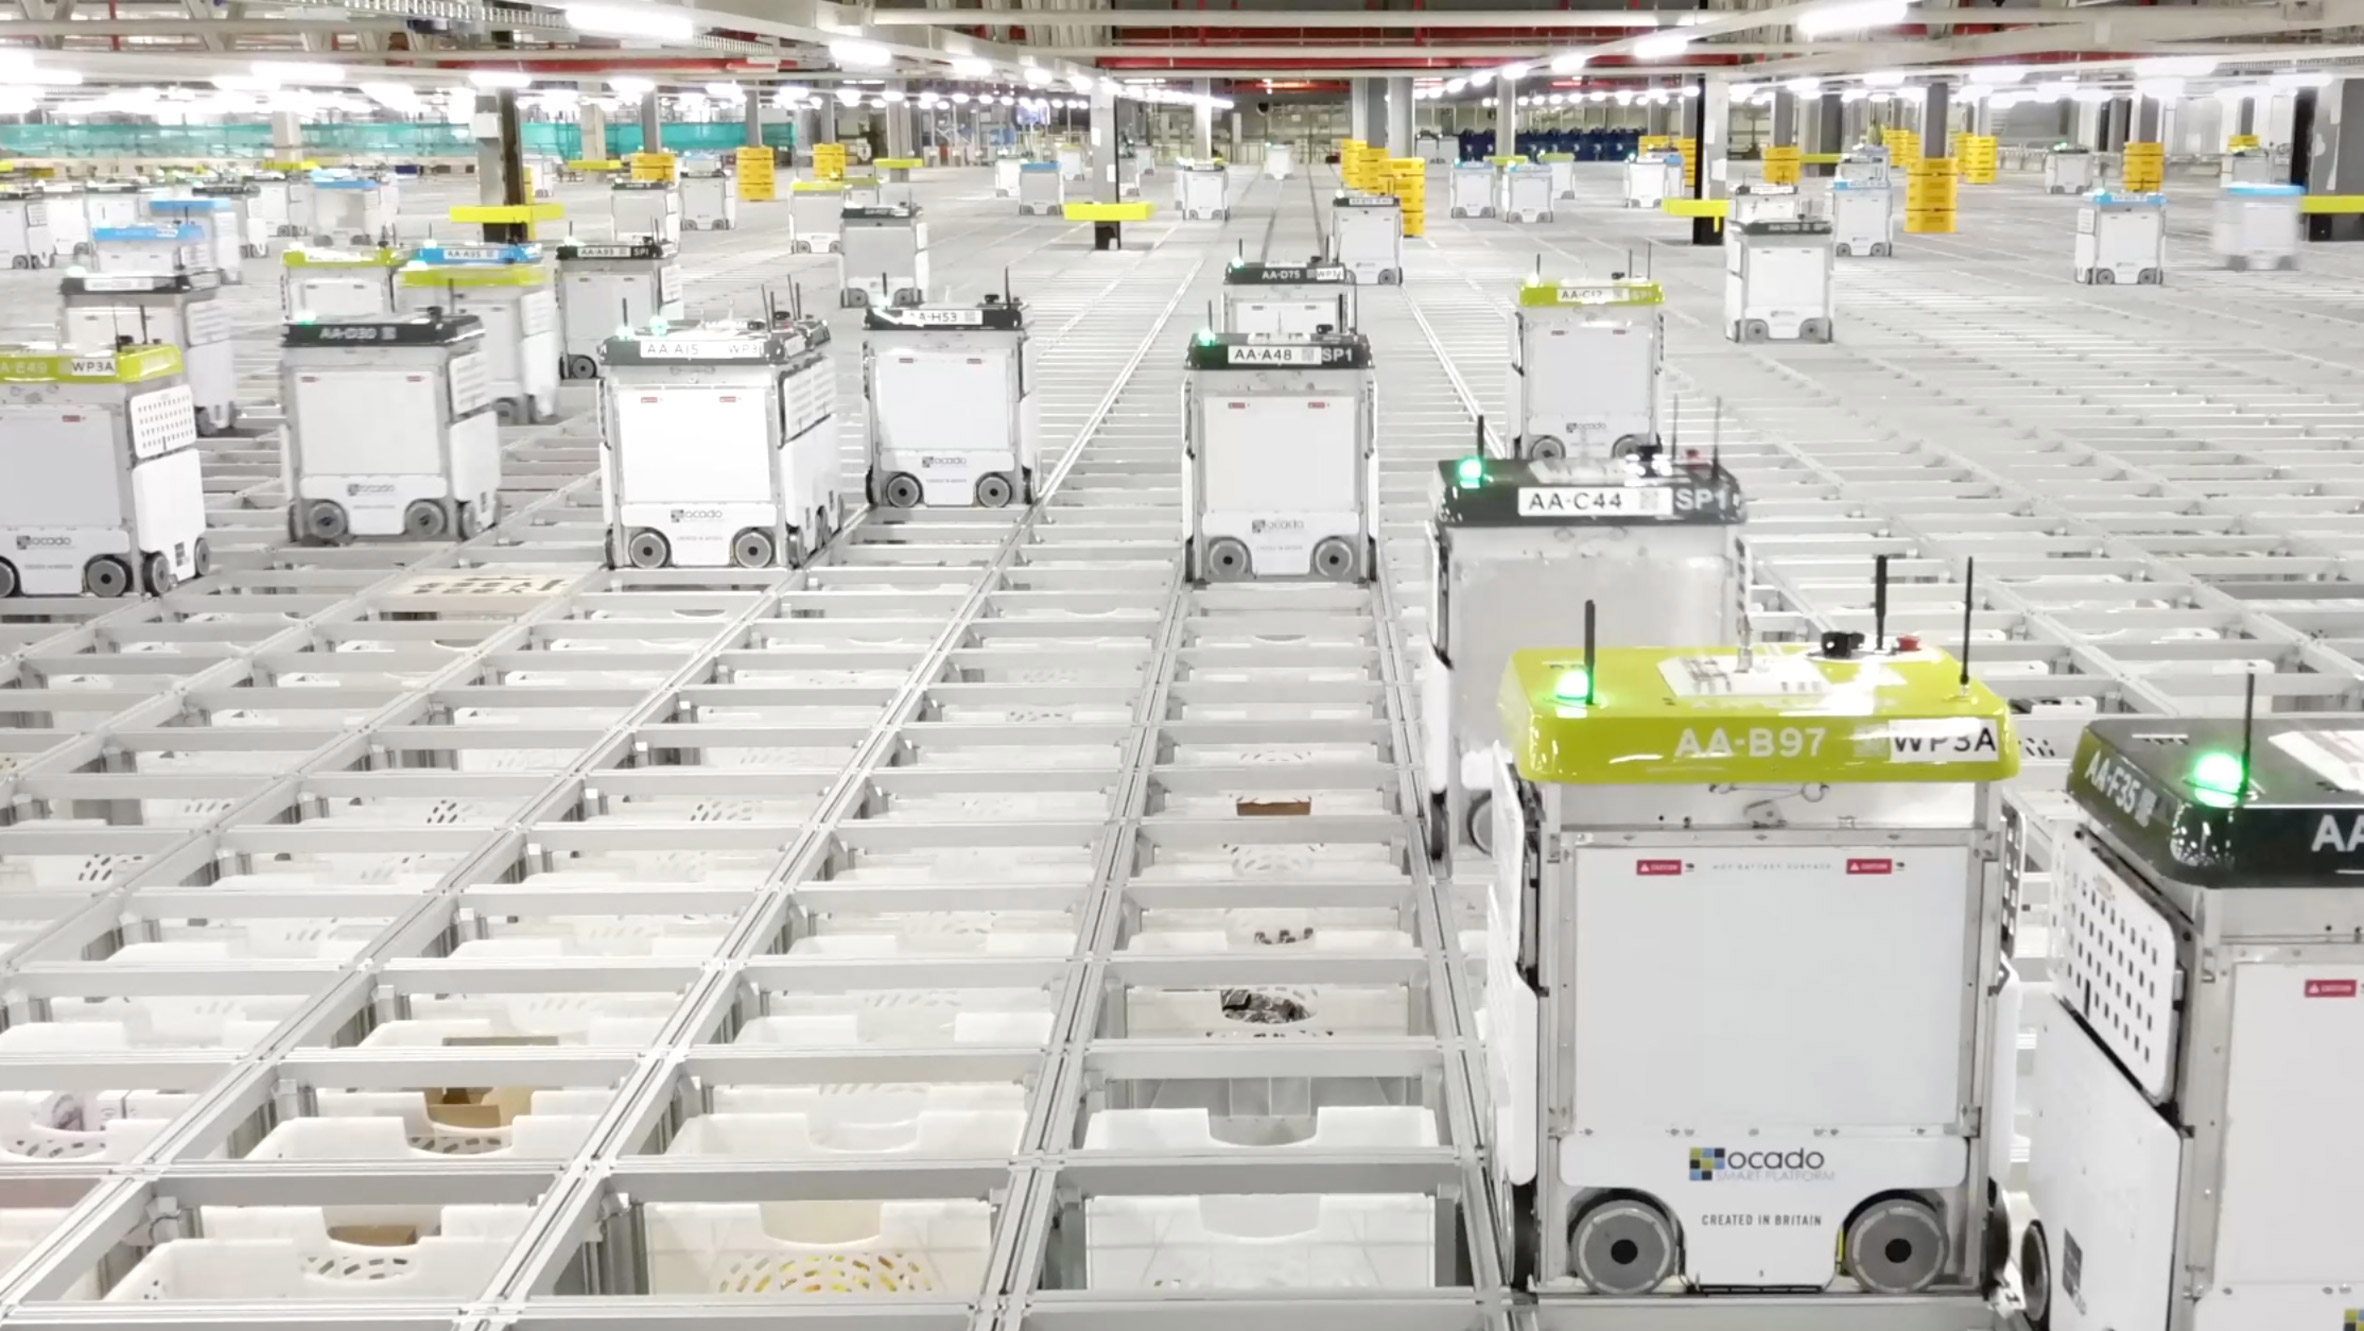 Over 1,000 robots pack groceries in Ocado's online shopping